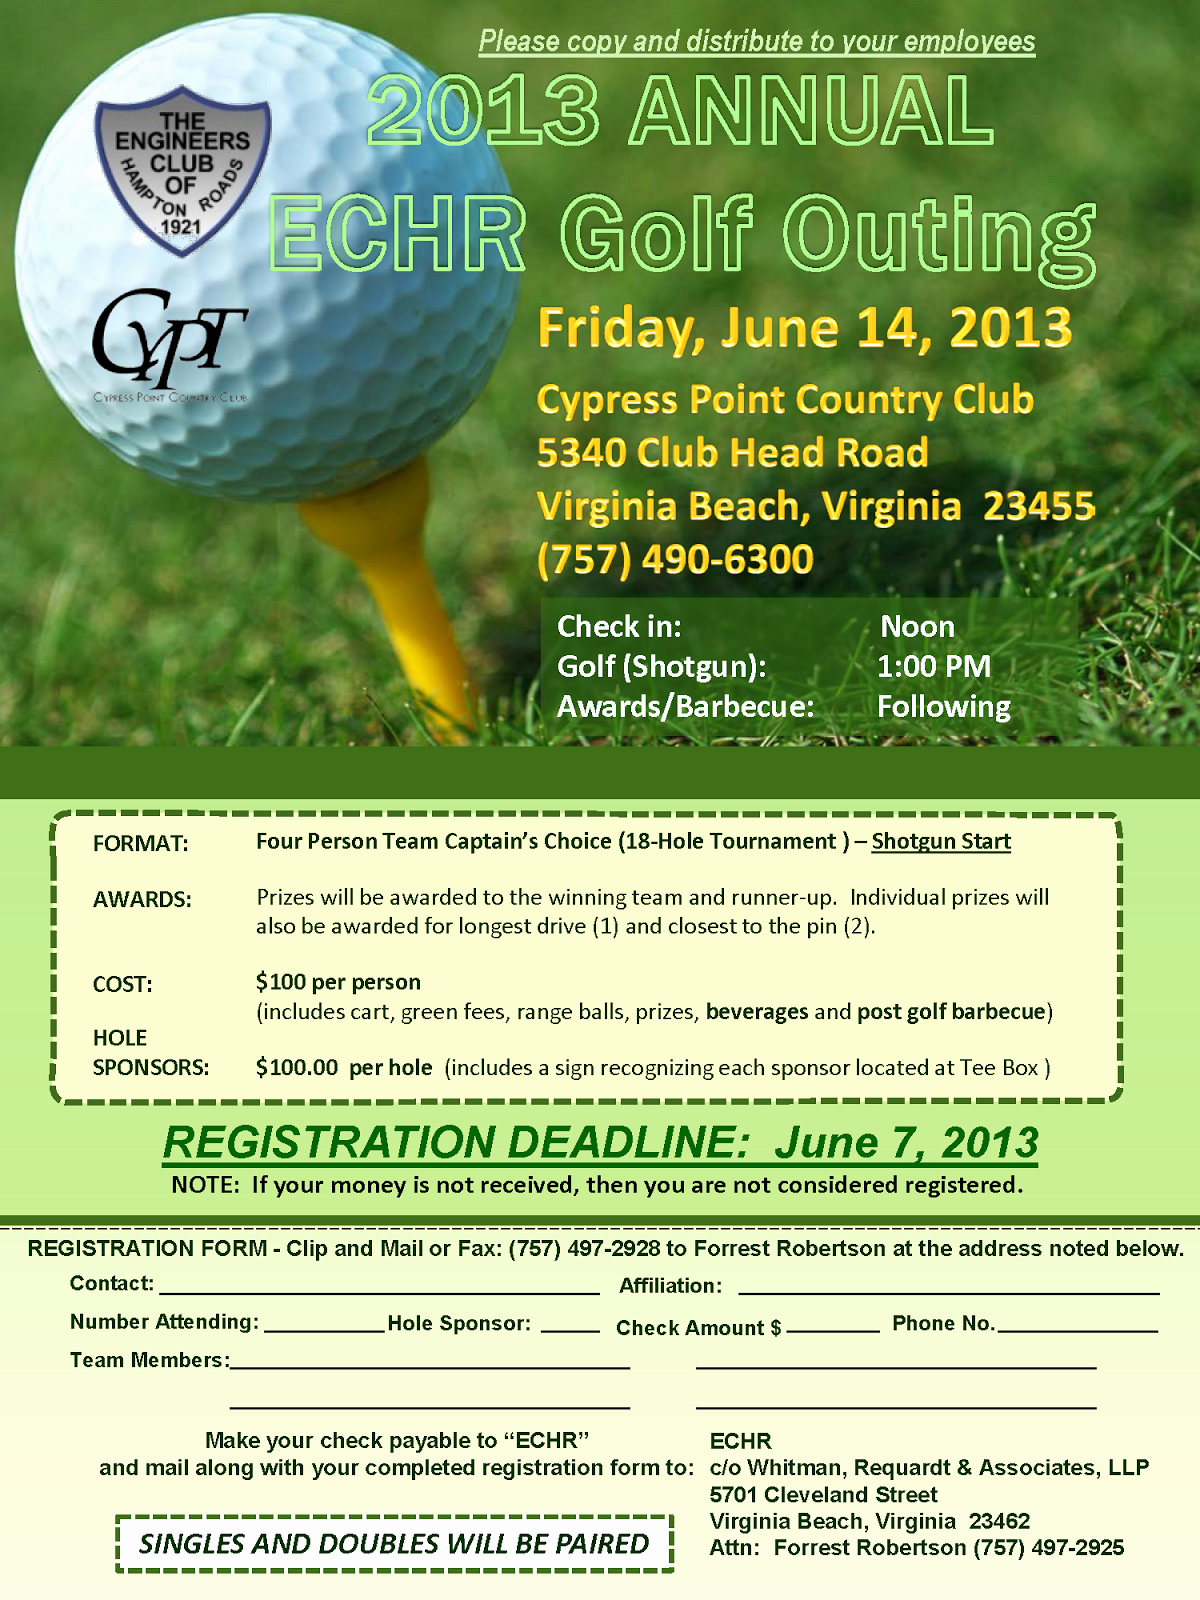 Free Golf tournament Flyers Templates Lovely Golf Outing Flyer Template